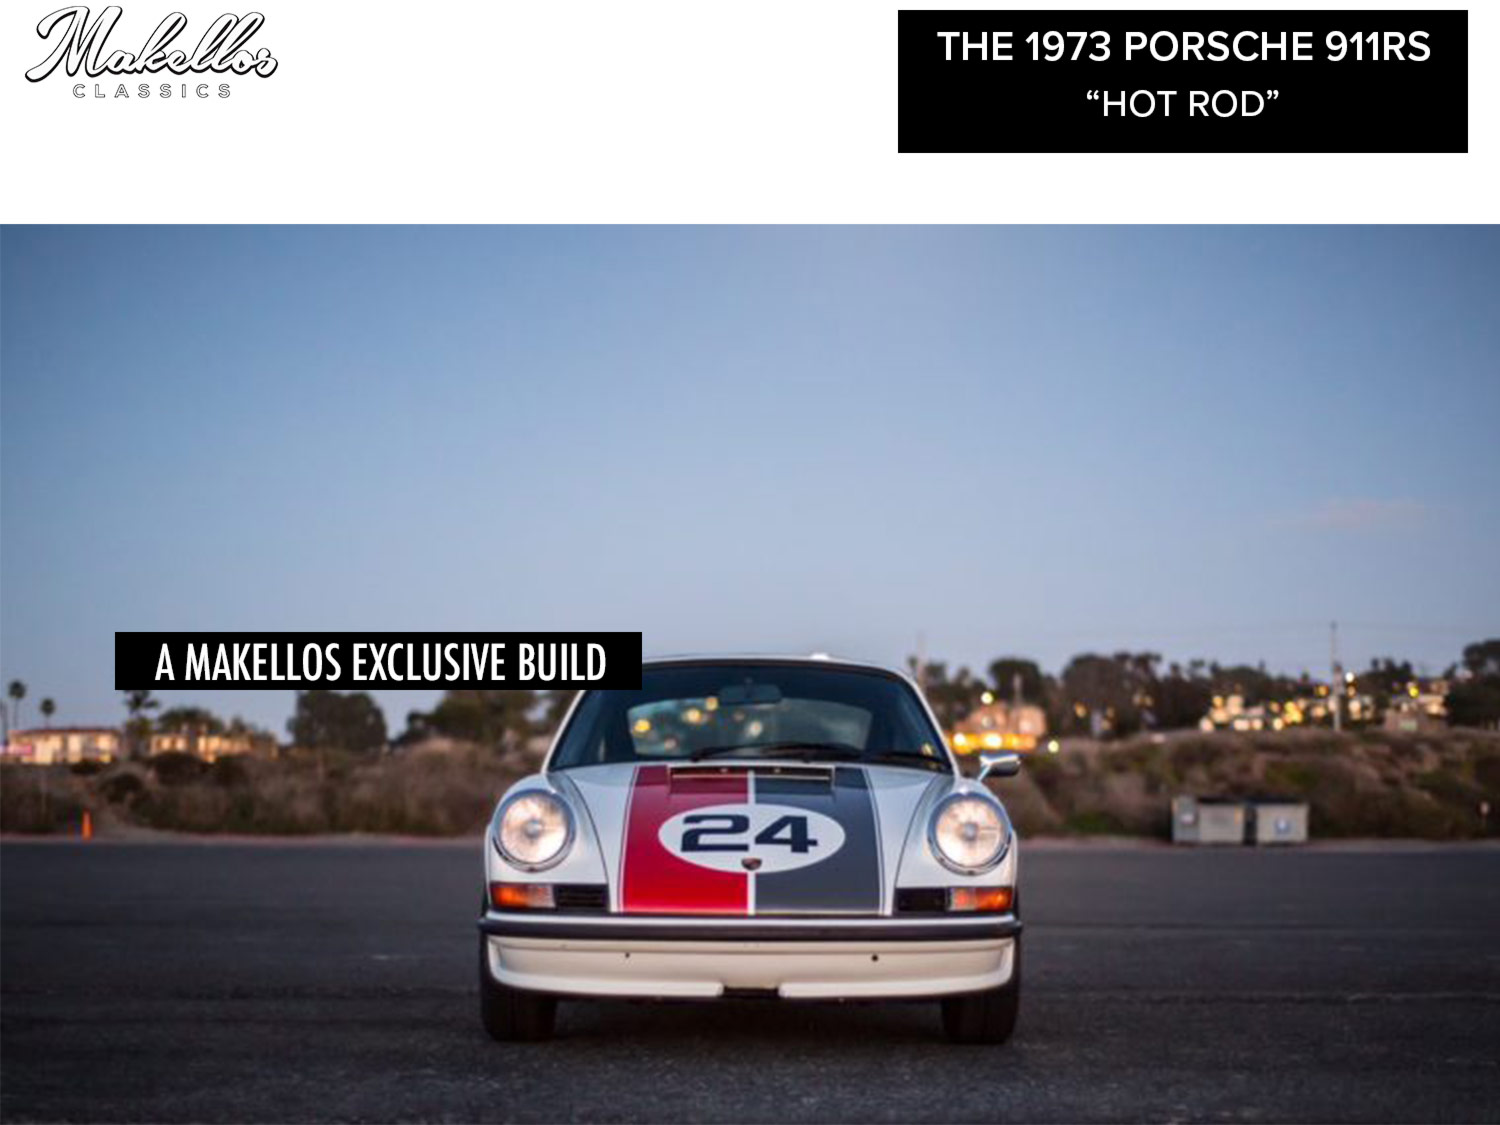 1973-Porsche-911rs-Exclusive-Build.jpg